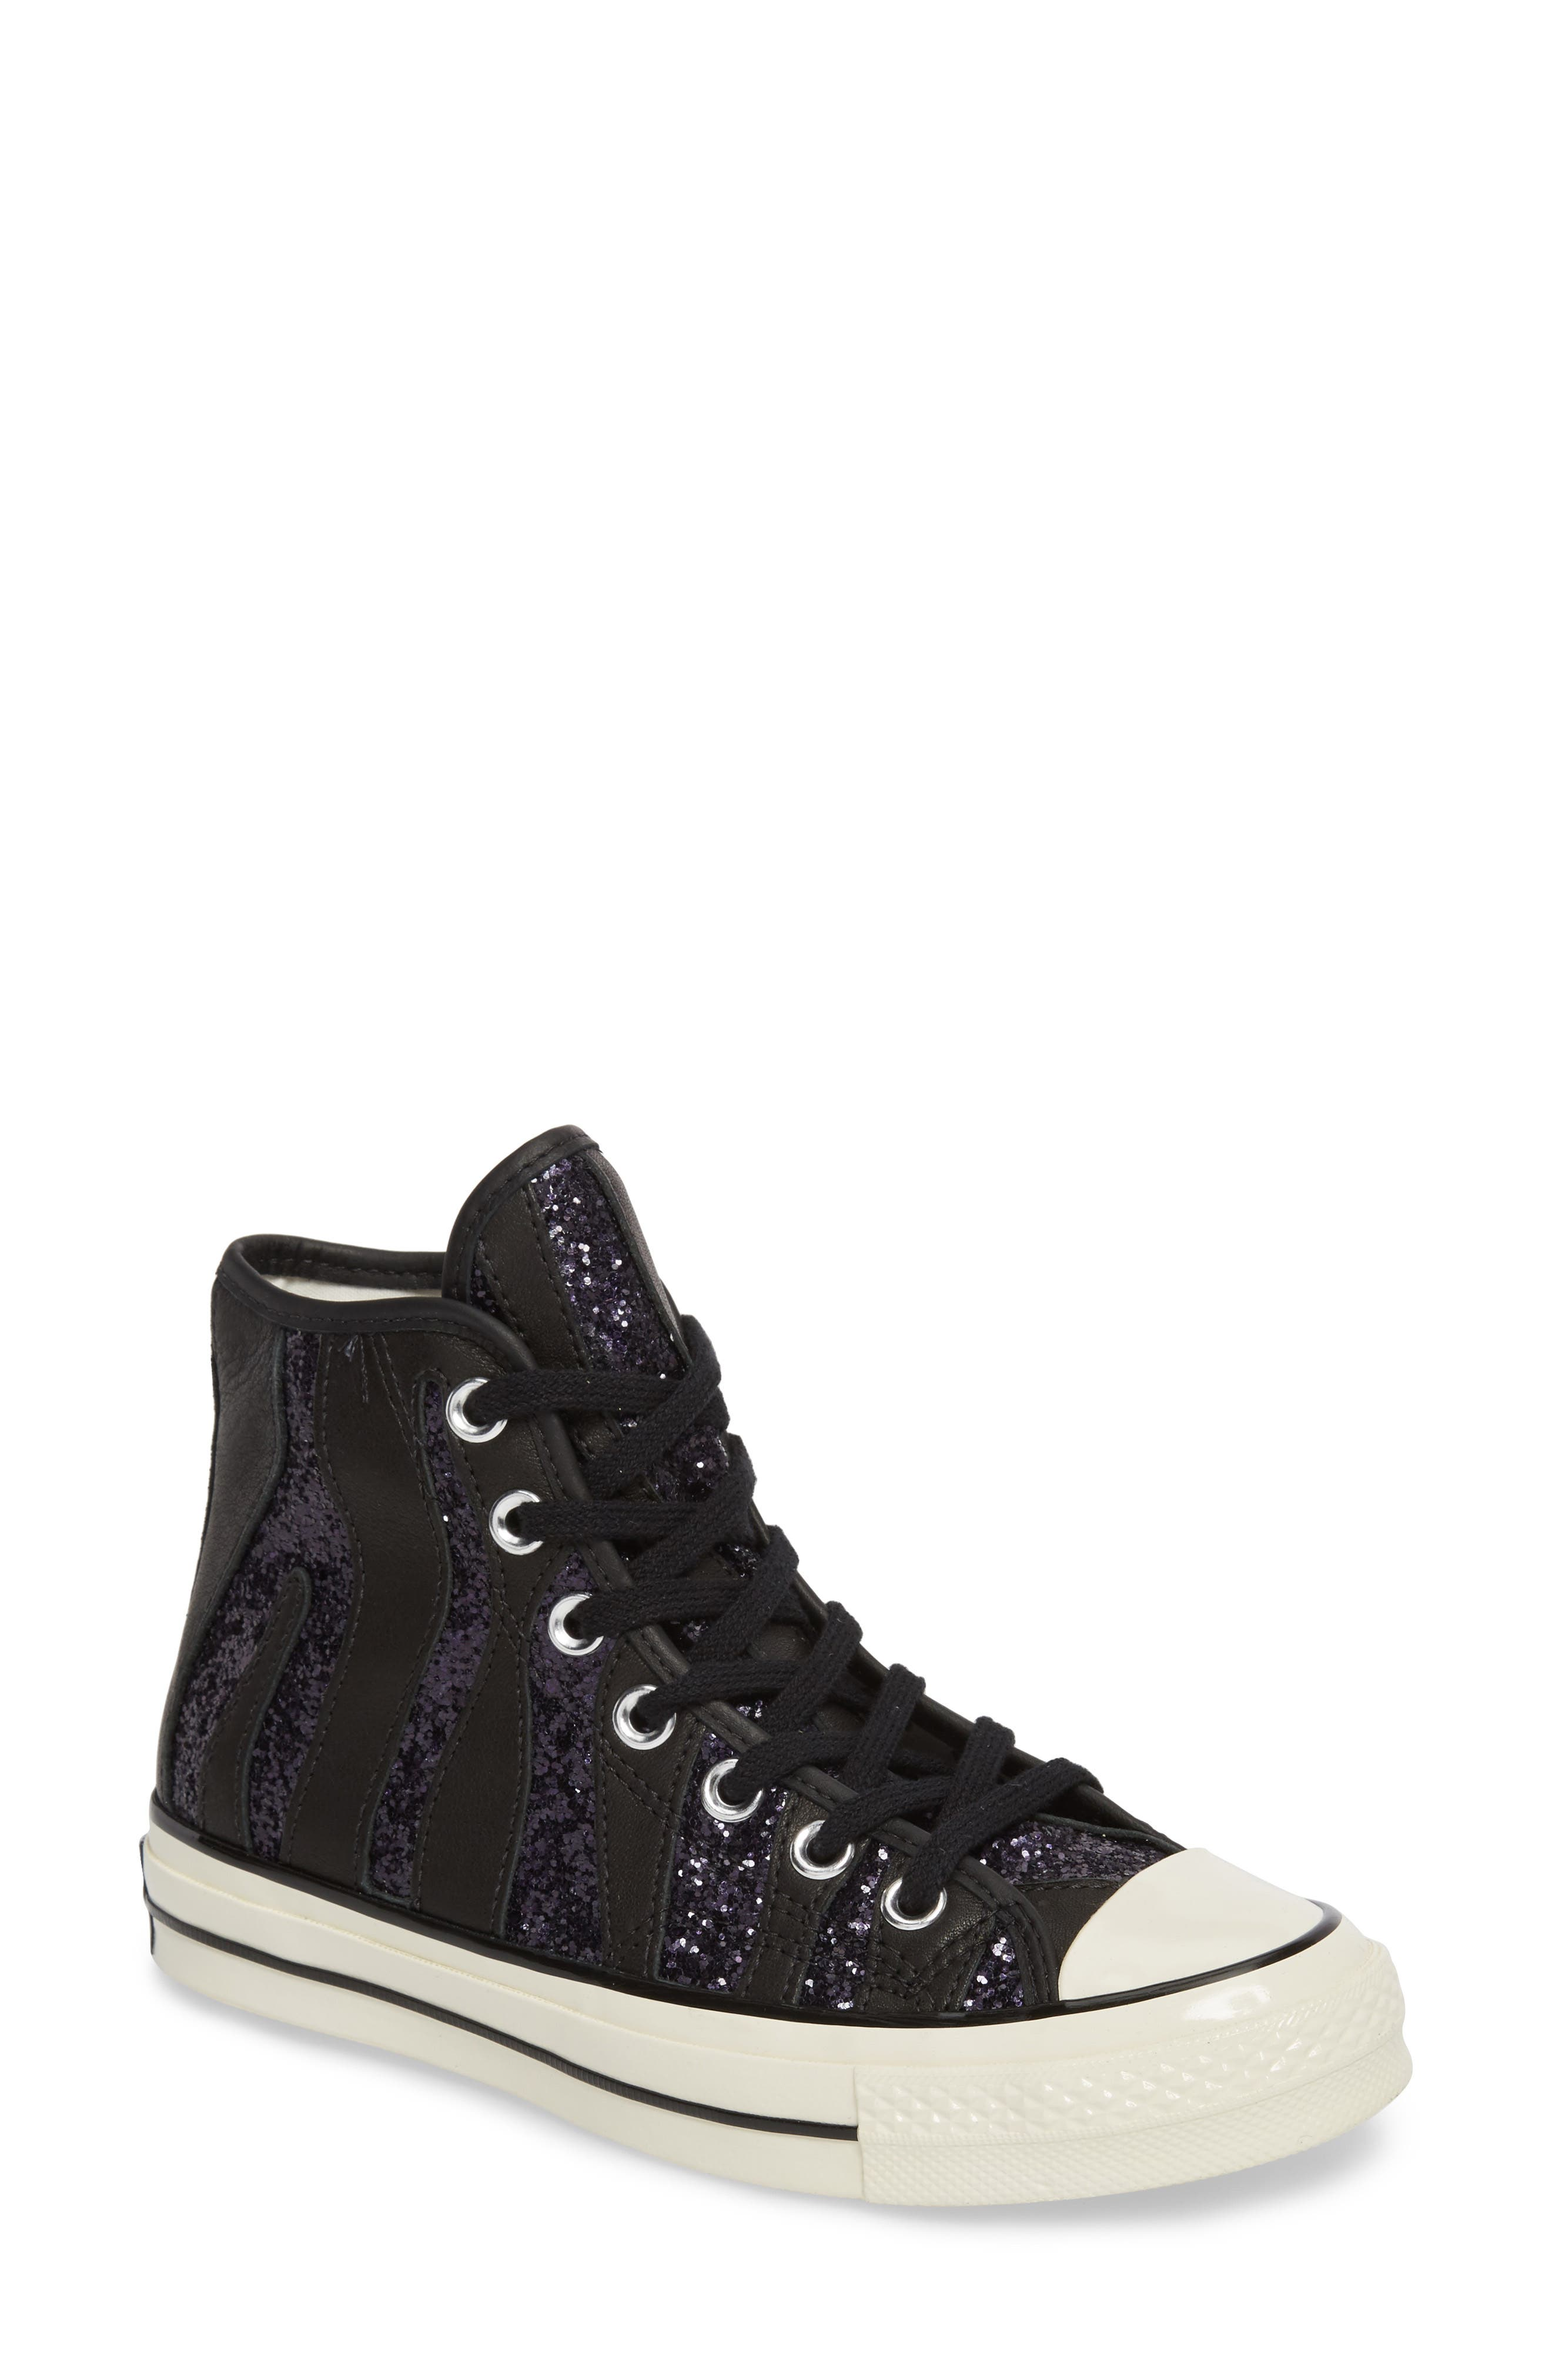 Chuck Taylor<sup>®</sup> All Star<sup>®</sup> 70 Animal Glitter High Top Sneaker,                         Main,                         color, Black